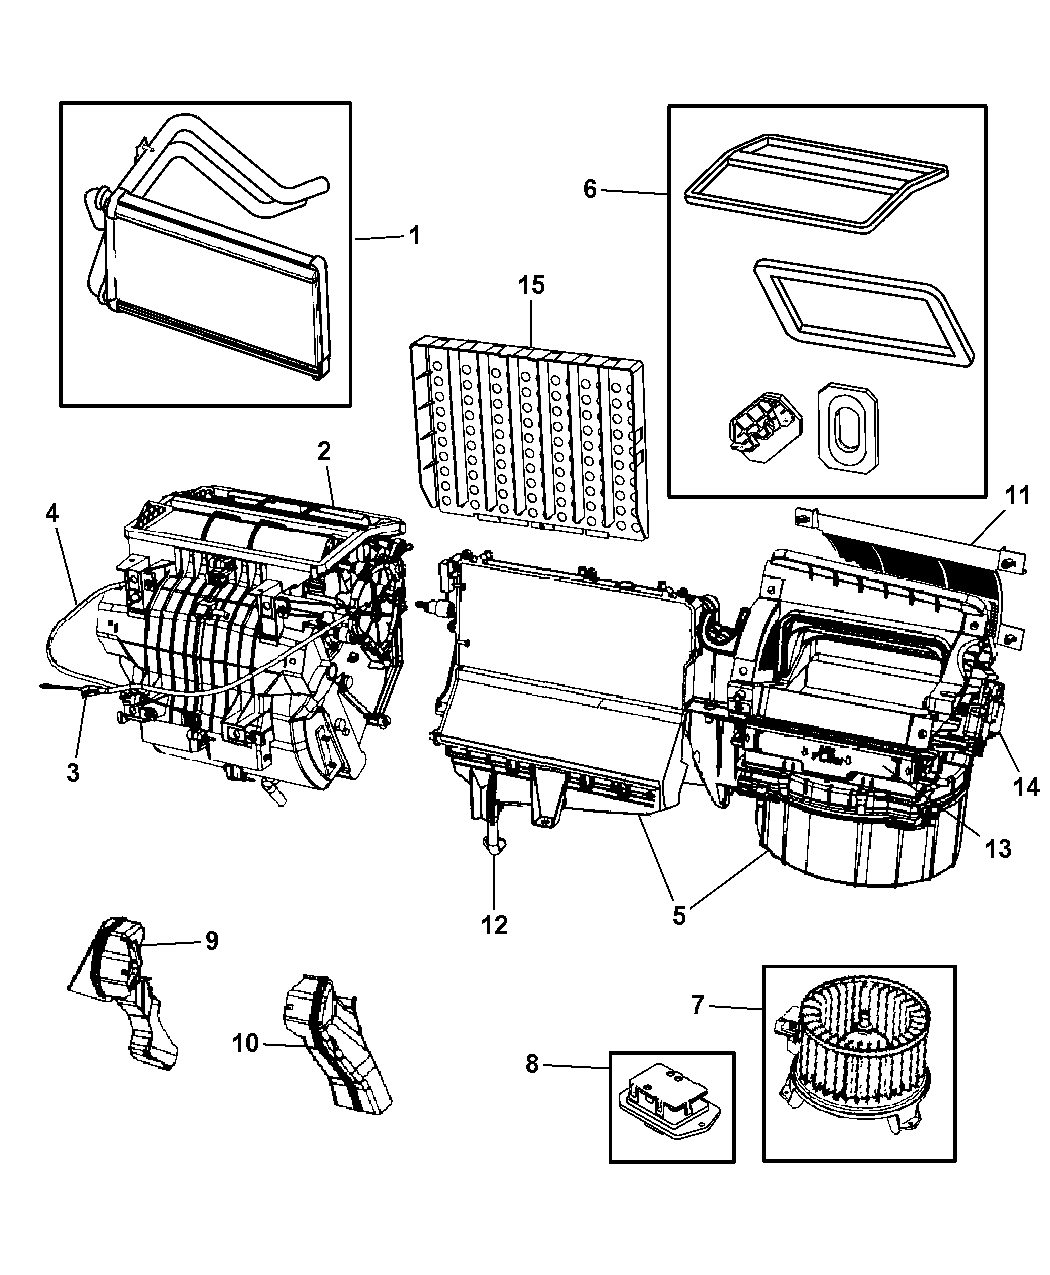 Dodge Caliber Srt 4 Engine Diagram. Dodge. Auto Wiring Diagram